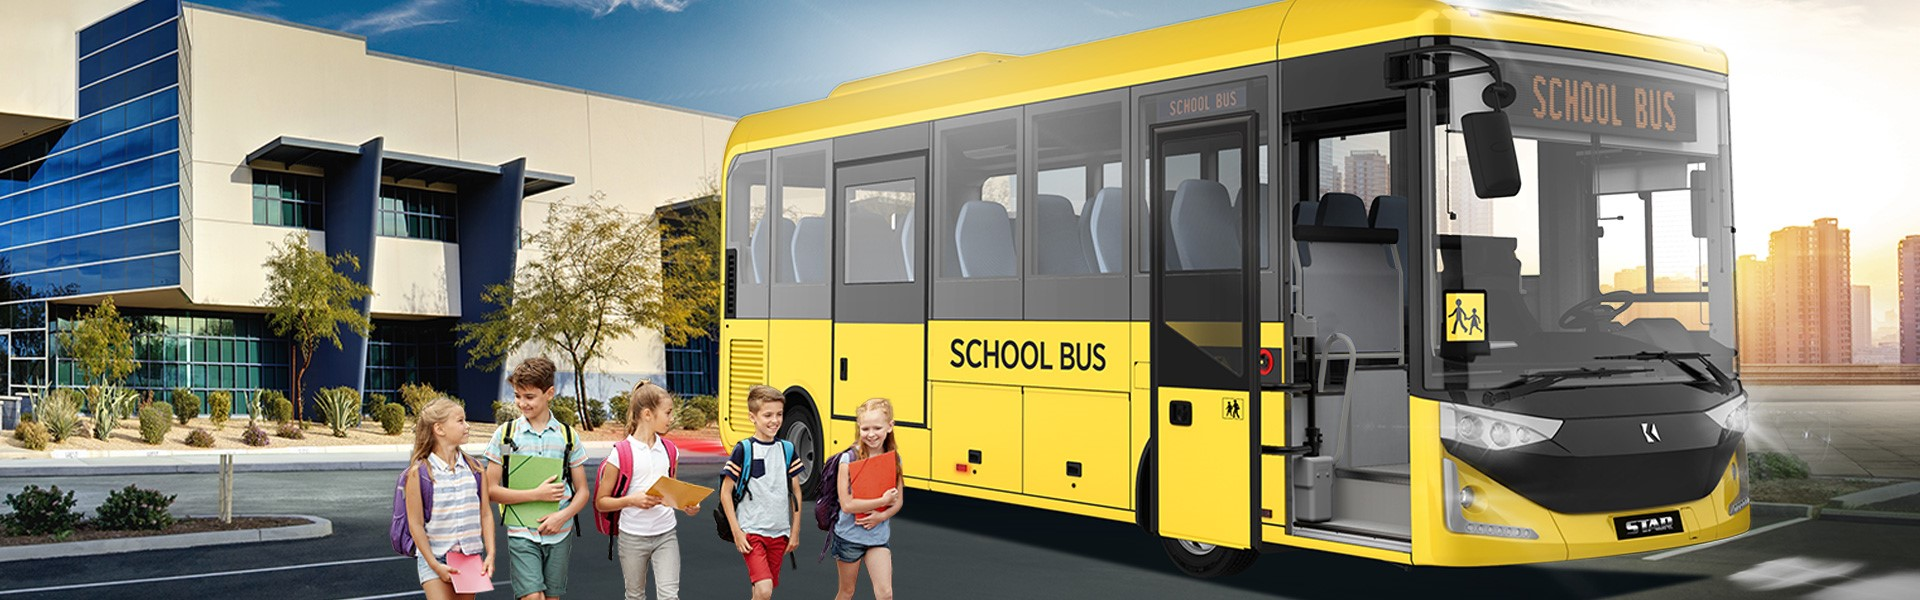 STAR SCHOOL BUS1